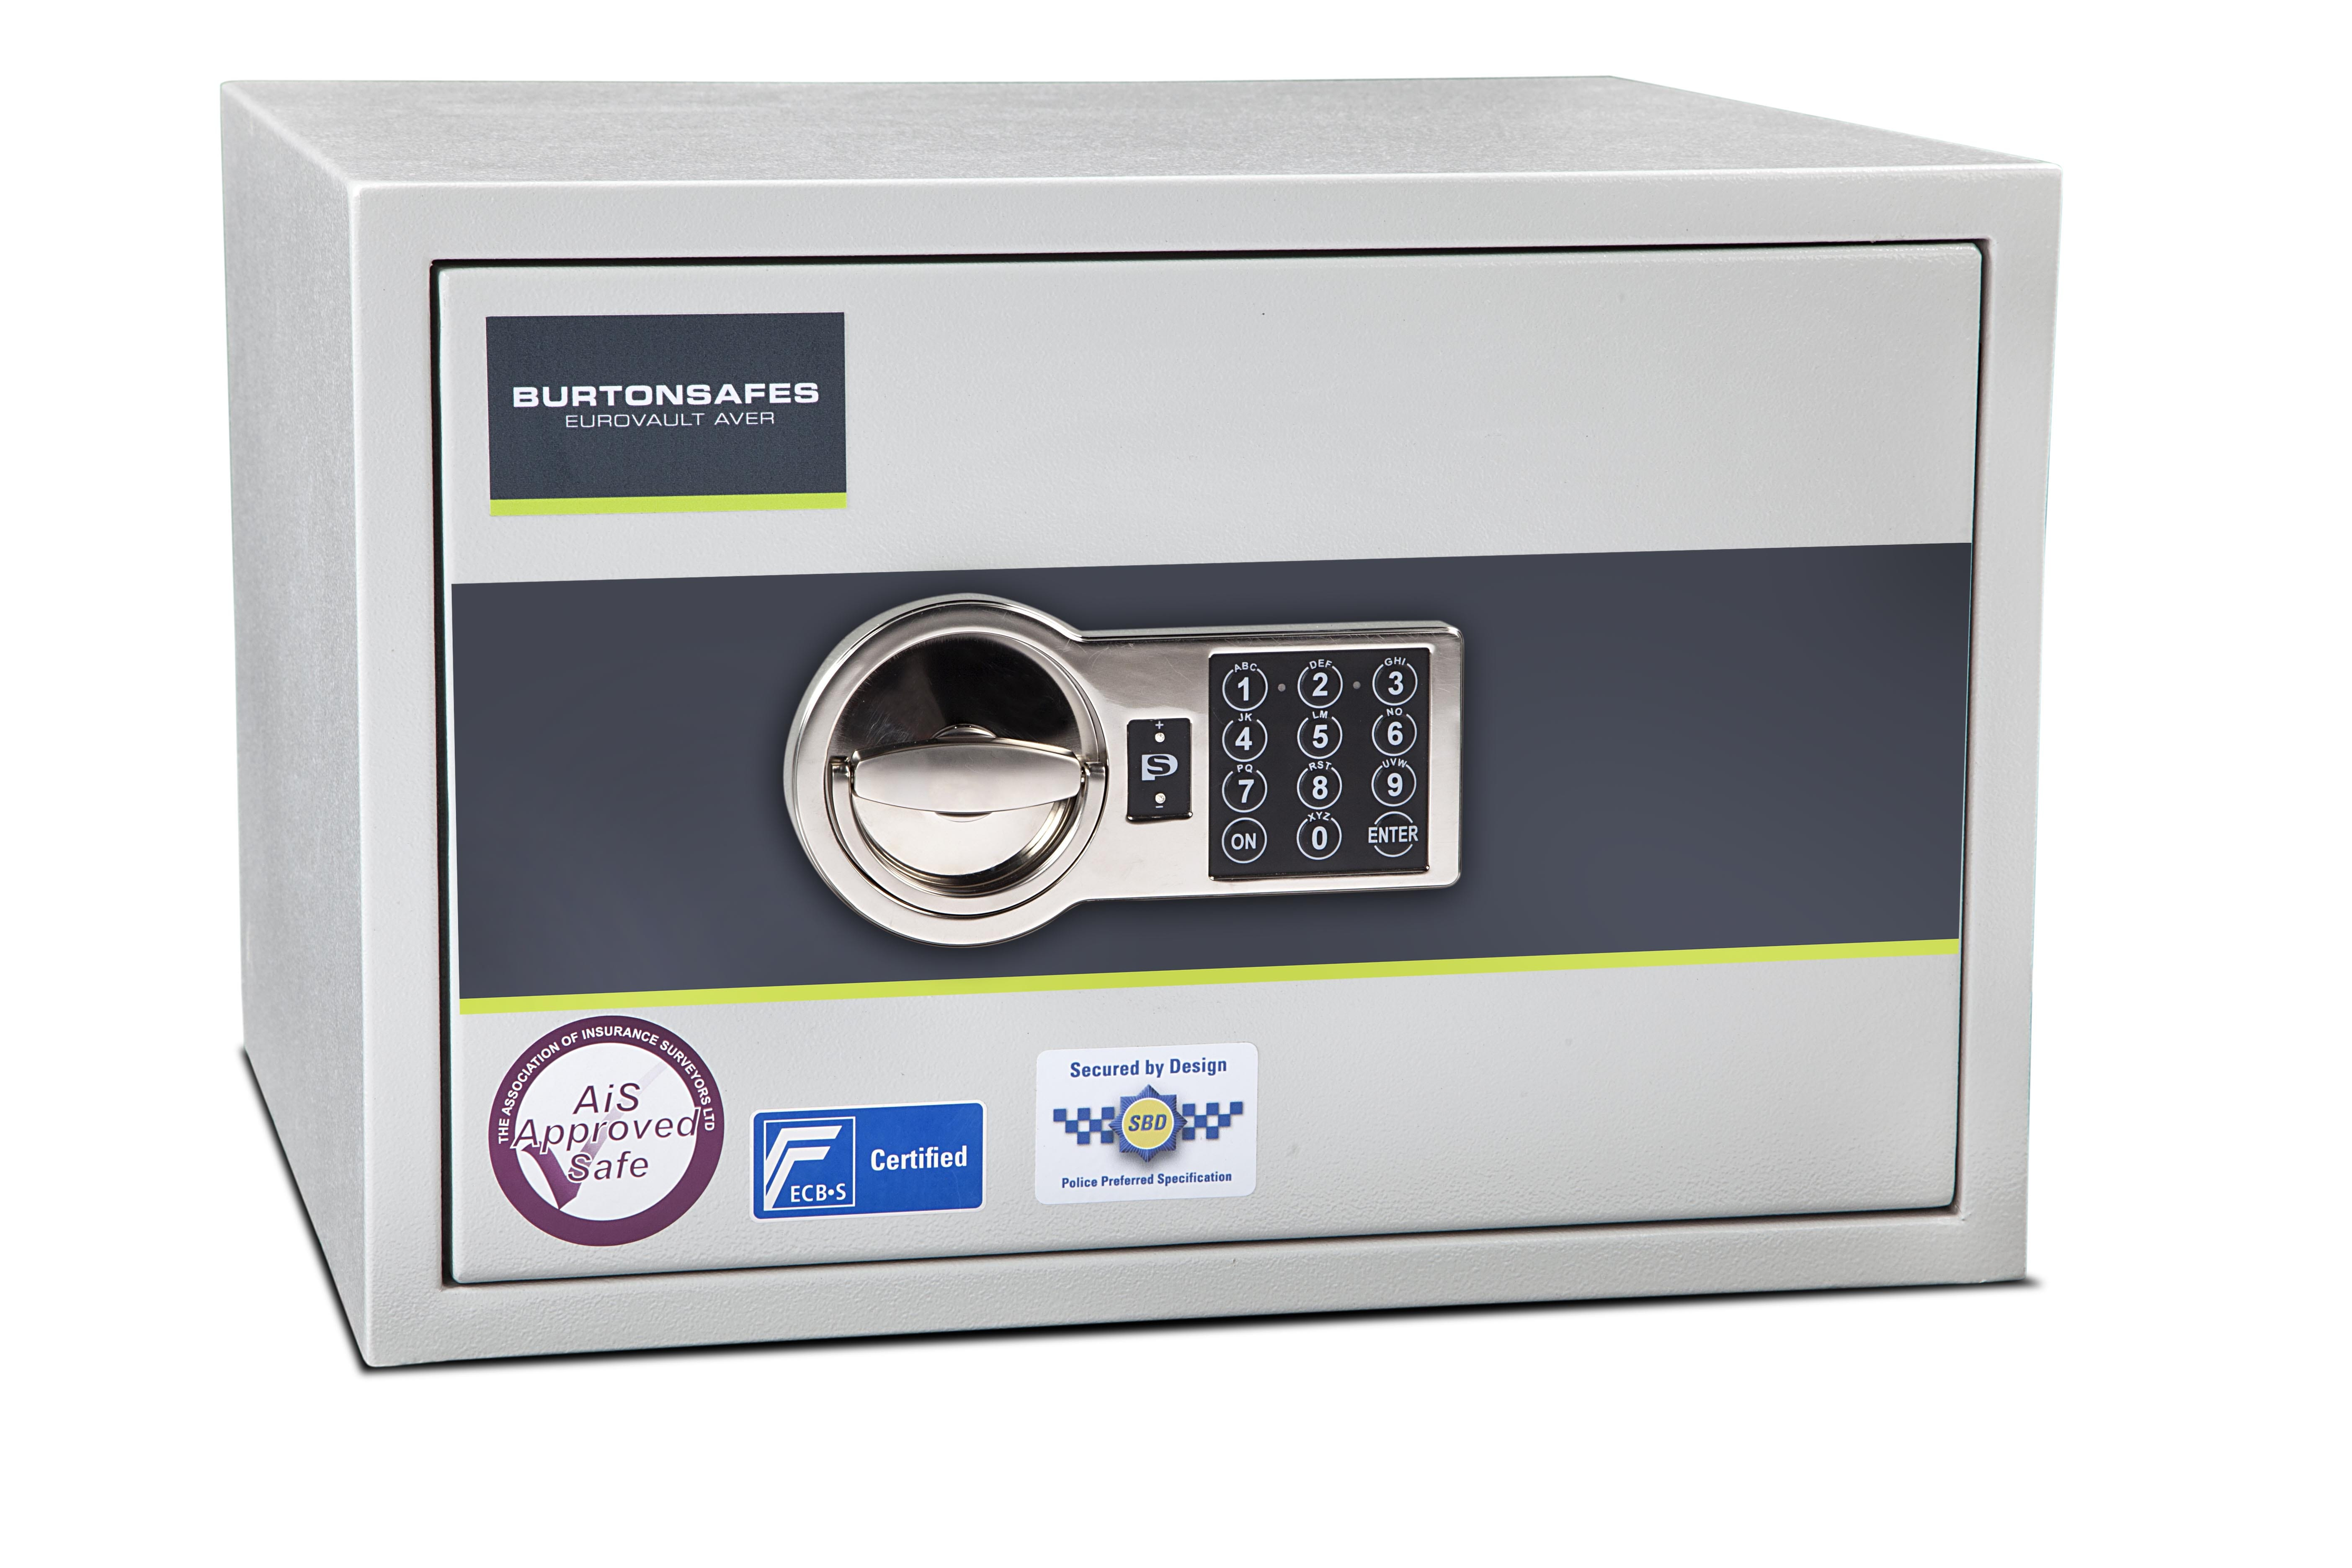 Safes and Locking: What's Better: Key or Electronic Lock